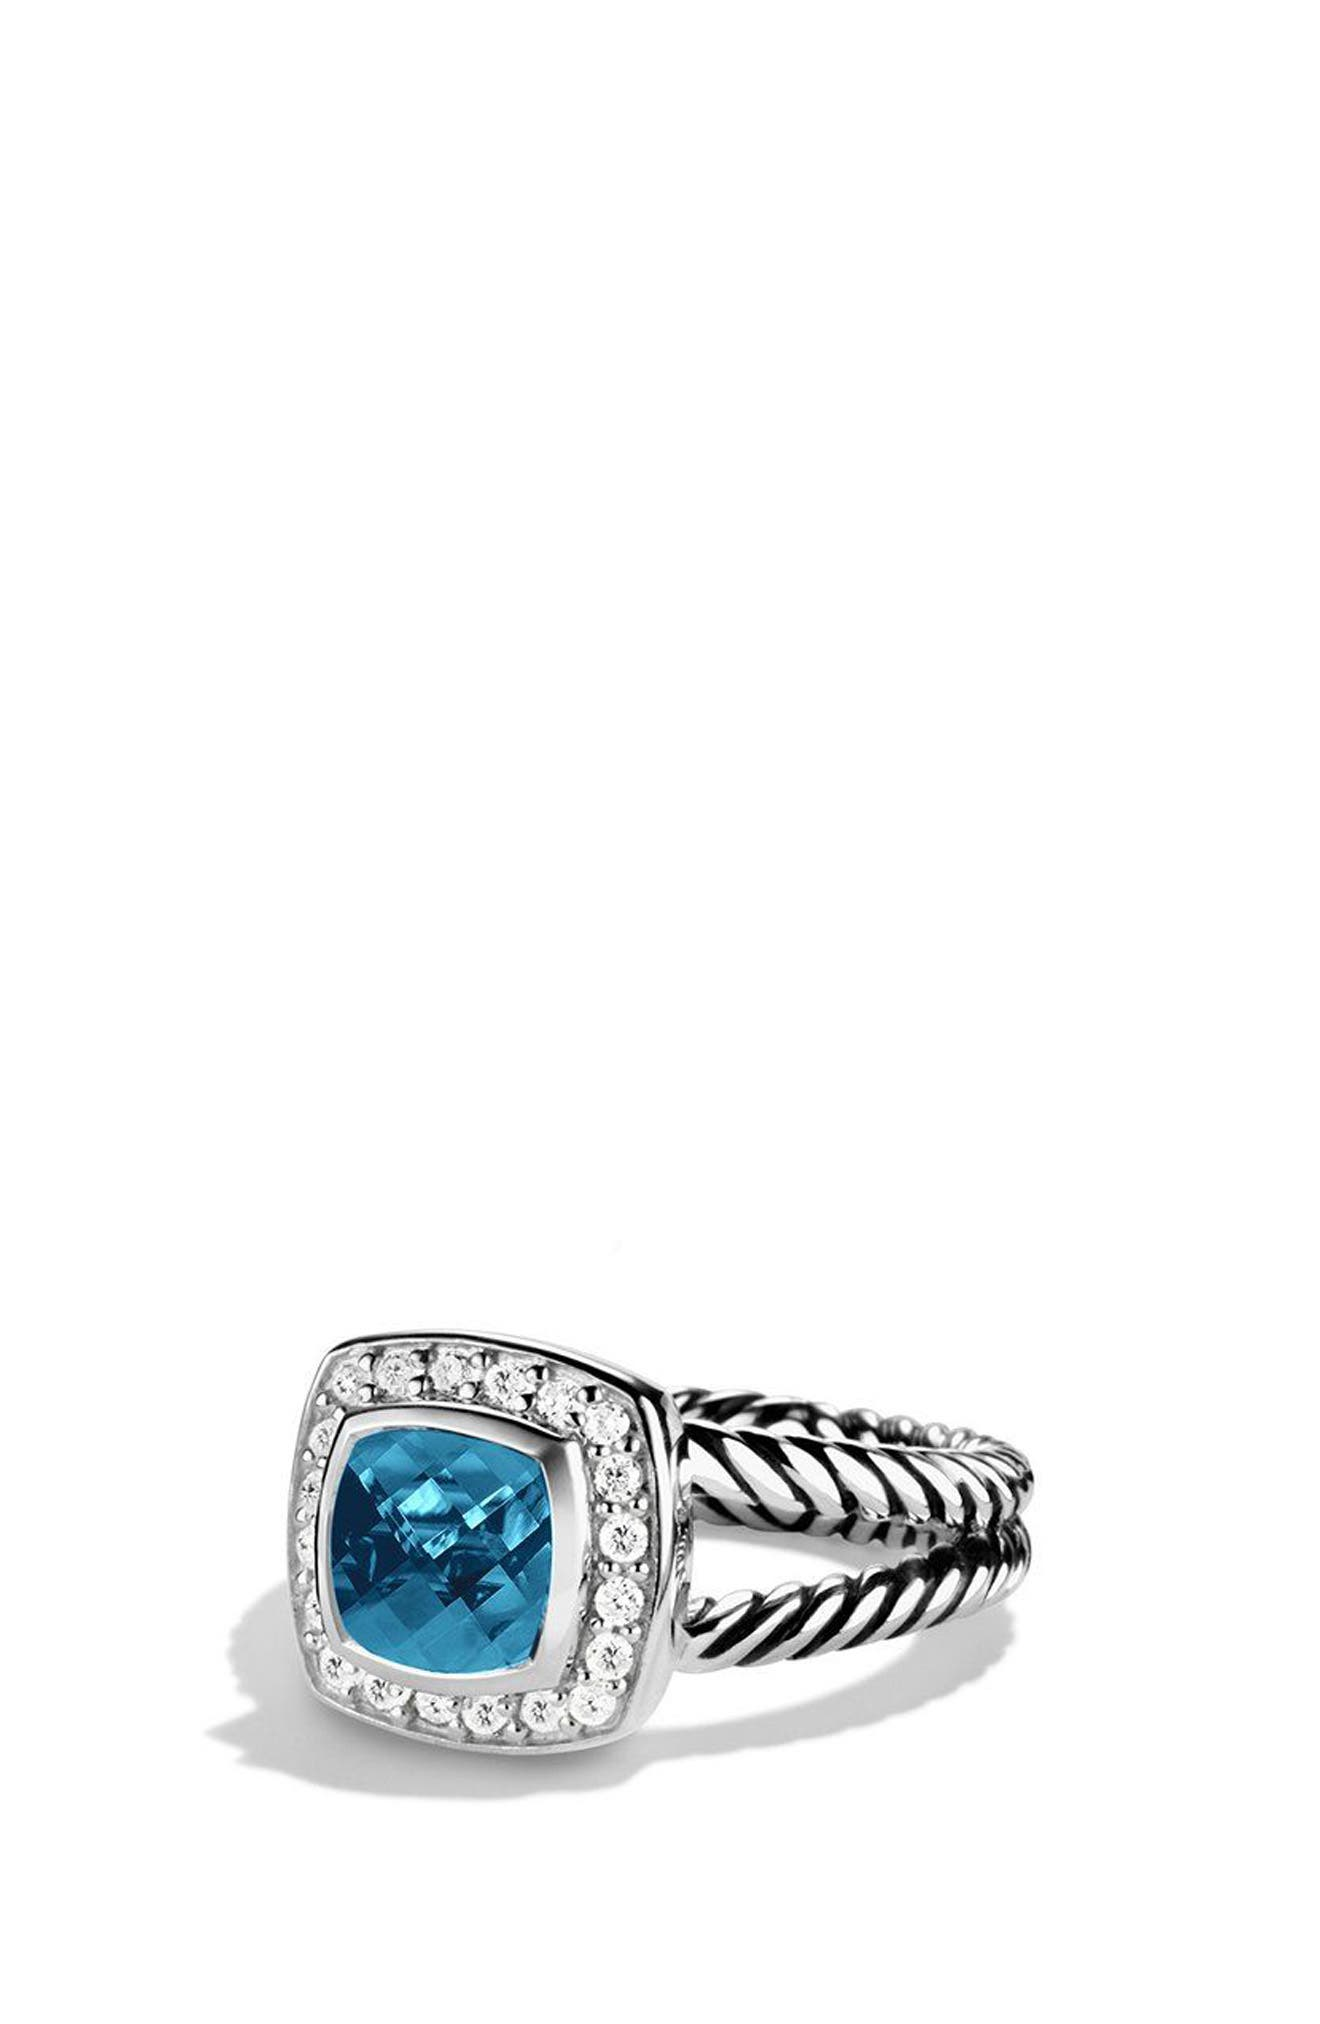 Petite Albion<sup>®</sup> Ring with Diamonds,                         Main,                         color, Hampton Blue Topaz